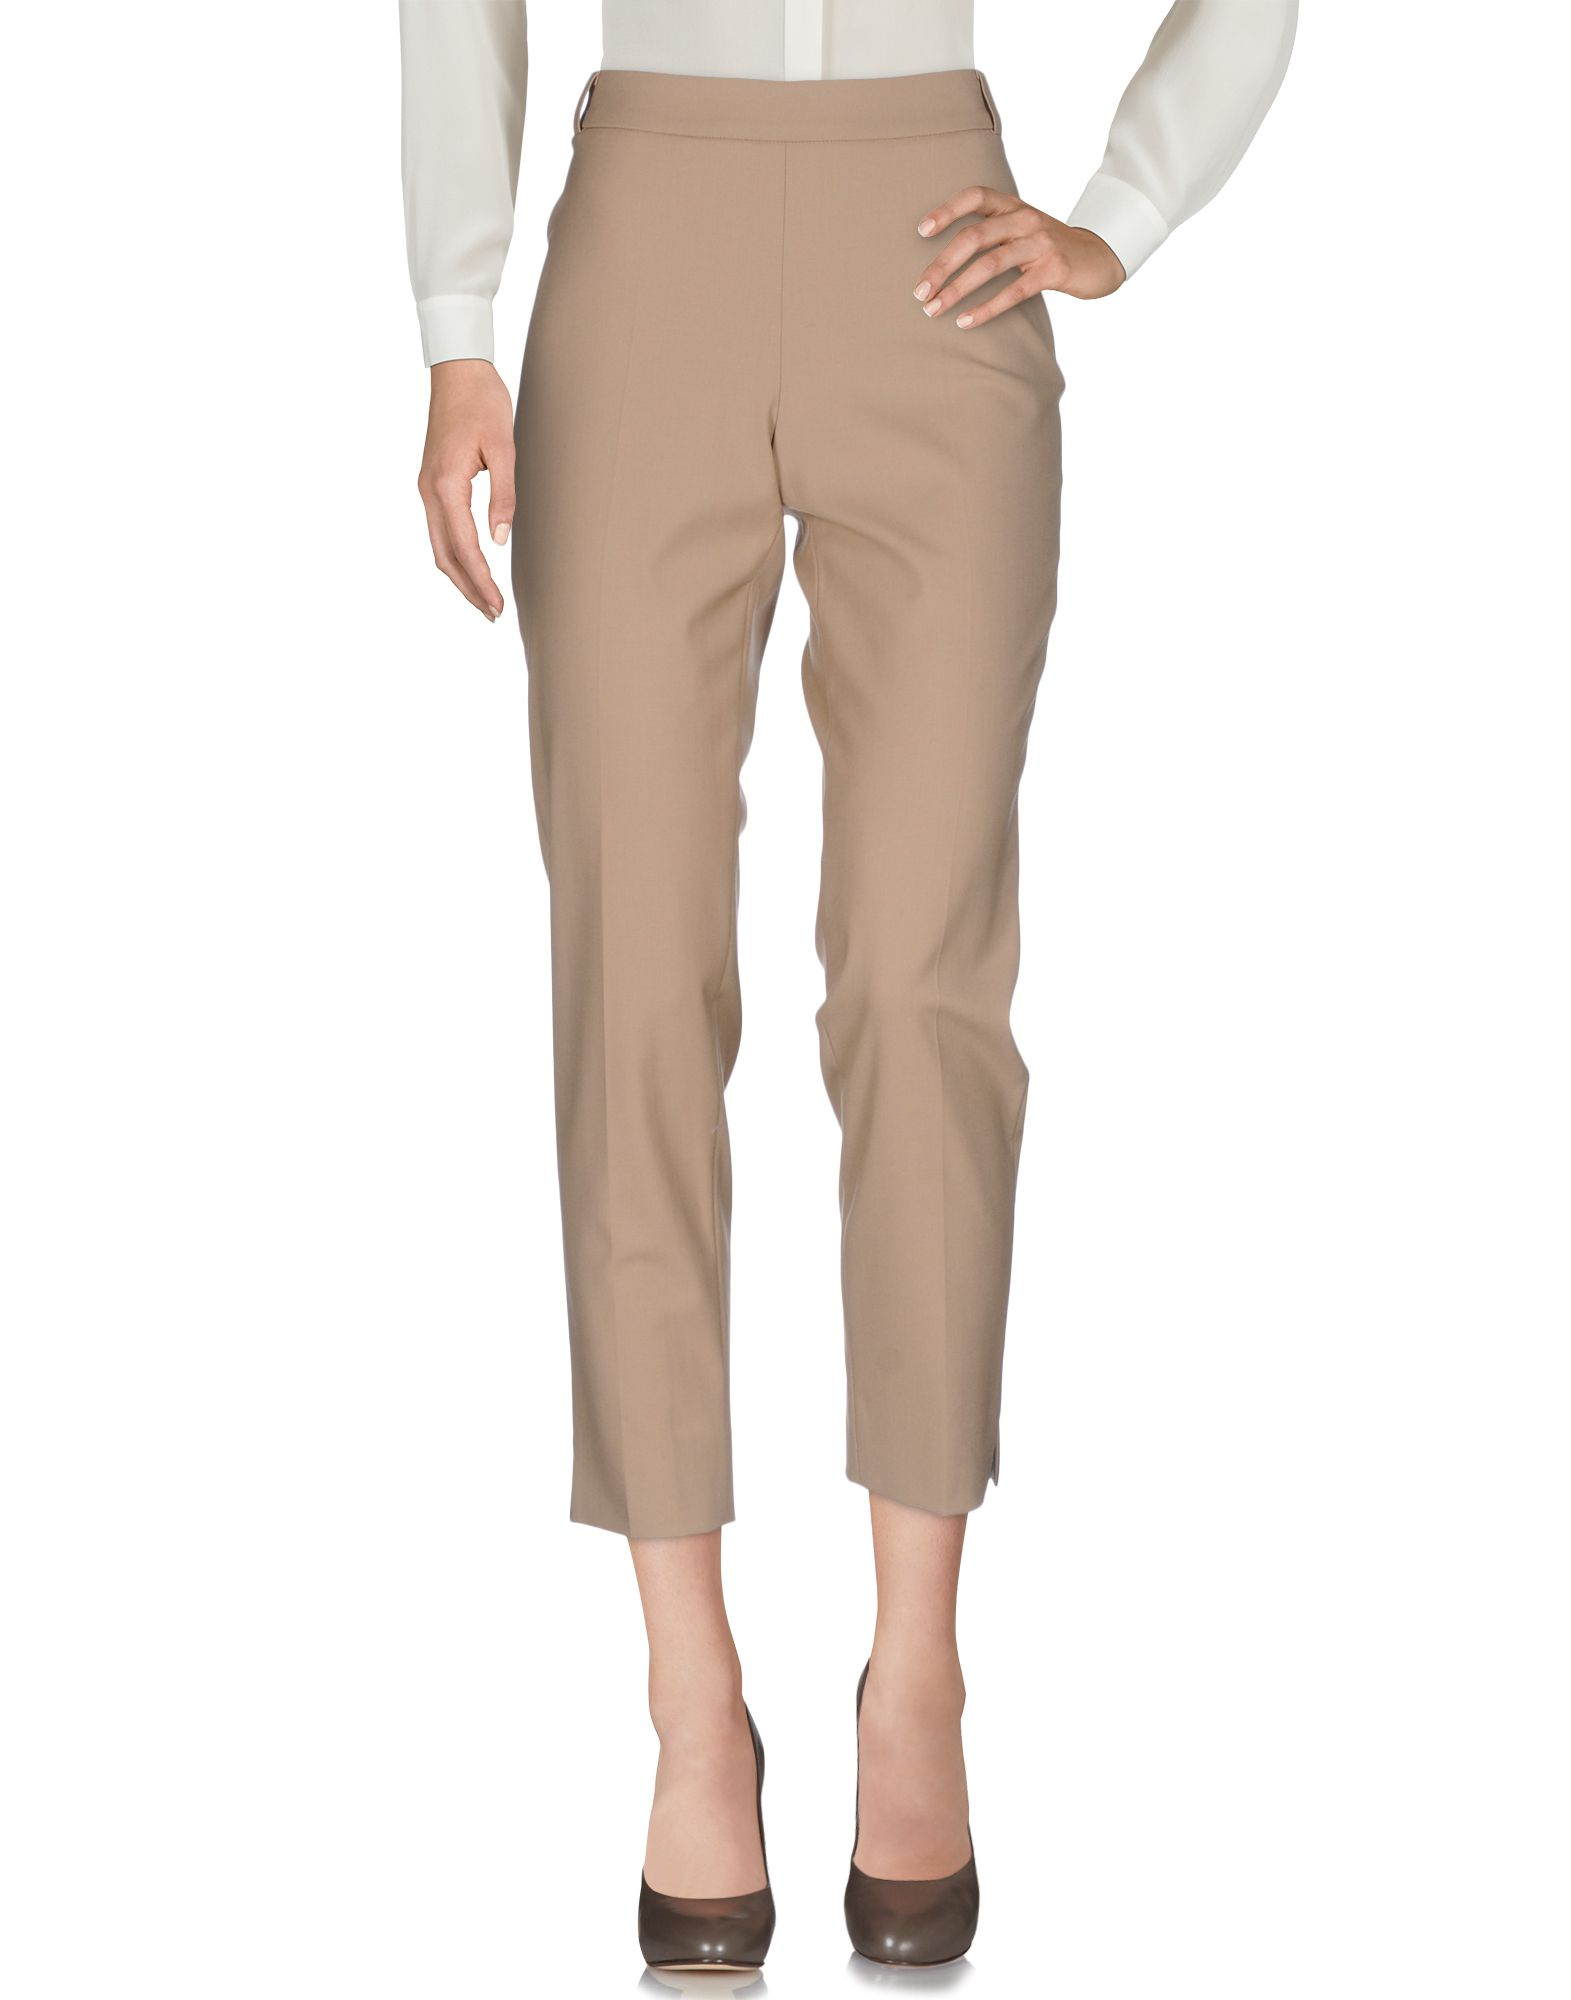 WEILL Casual Pants in Sand